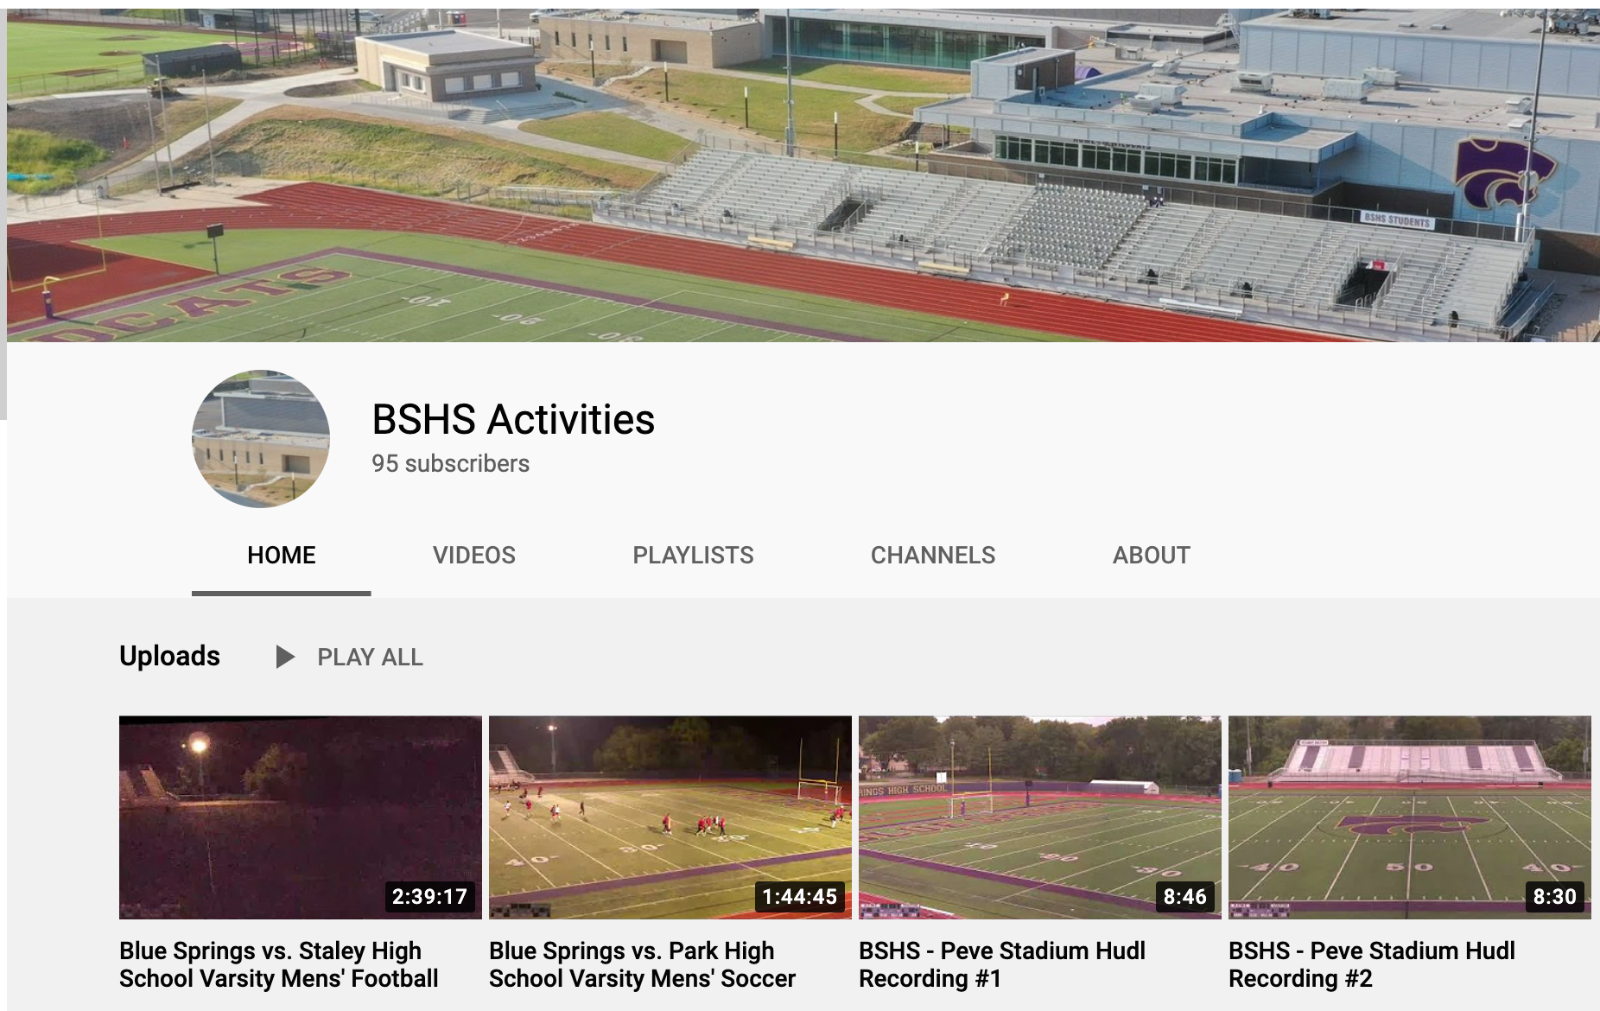 CHECKOUT THE BSHS ACTIVITIES YOUTUBE ACCOUNT